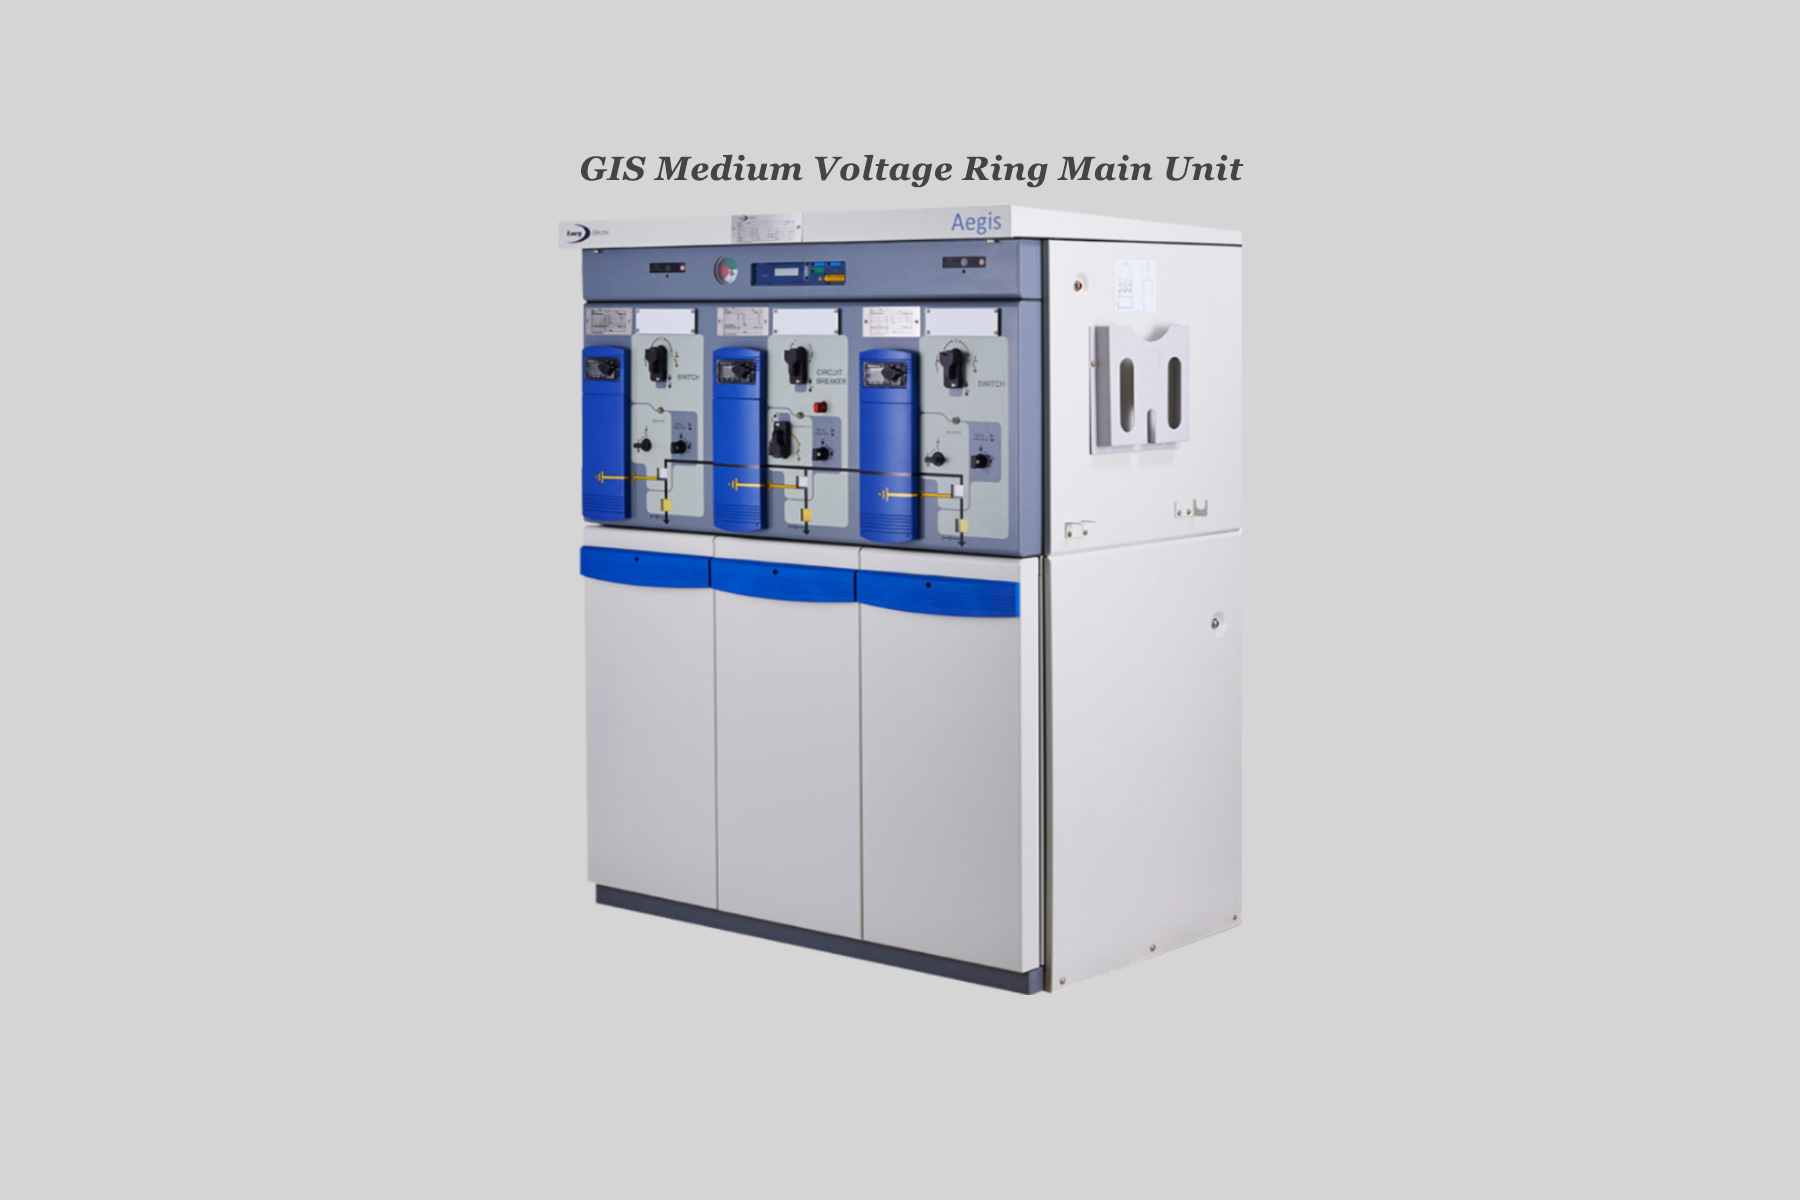 GIS Medium Voltage Ring Main Unit